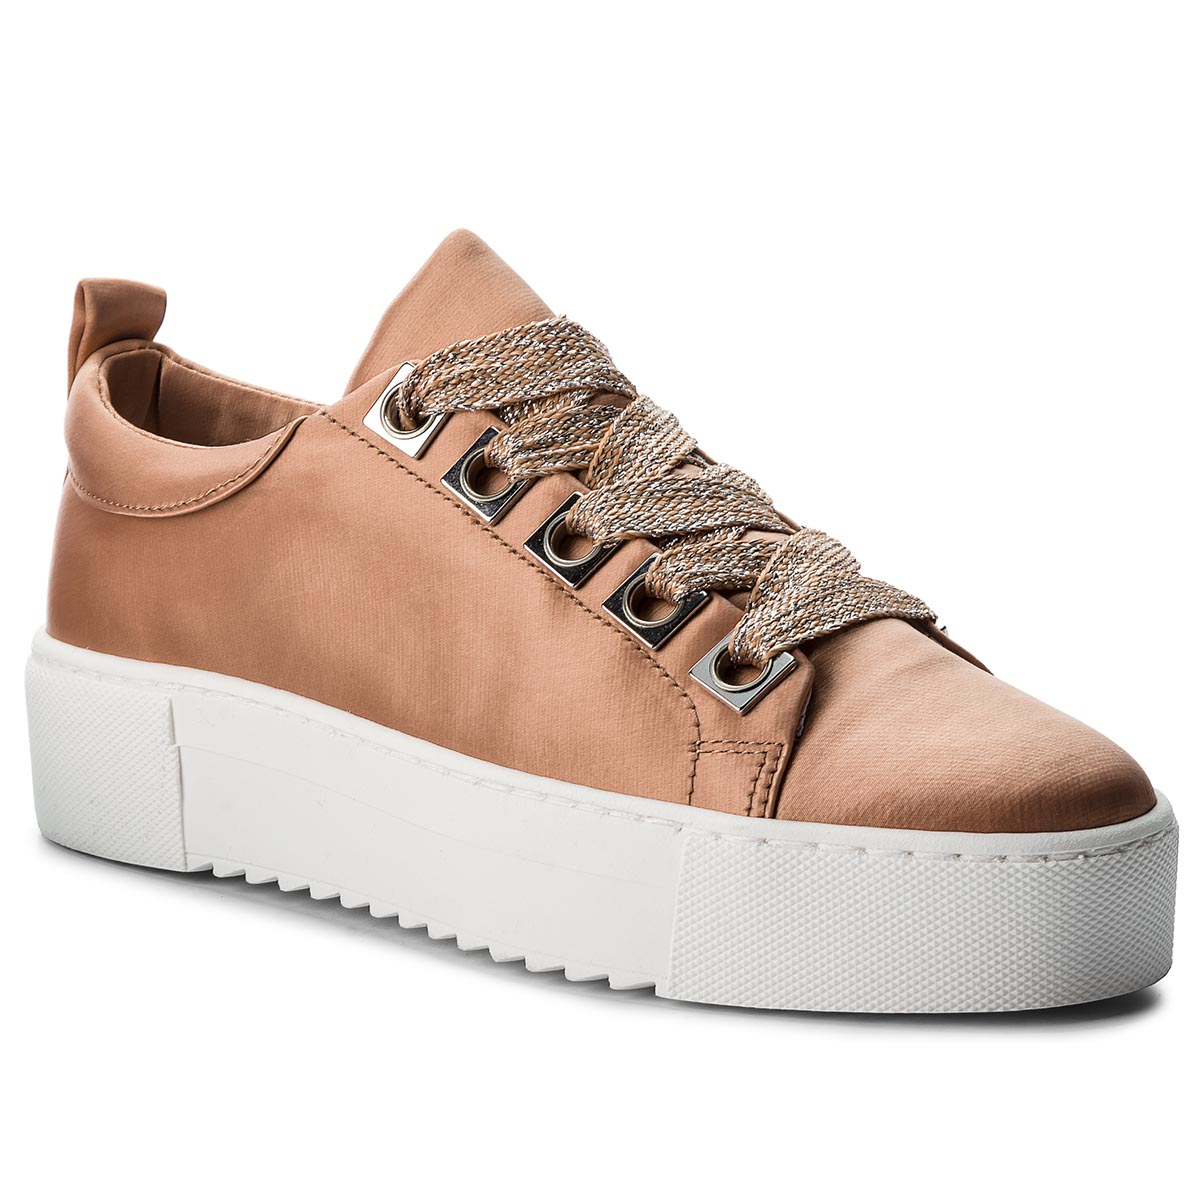 Sneakersy BRONX - 66121-A New Nude 2208